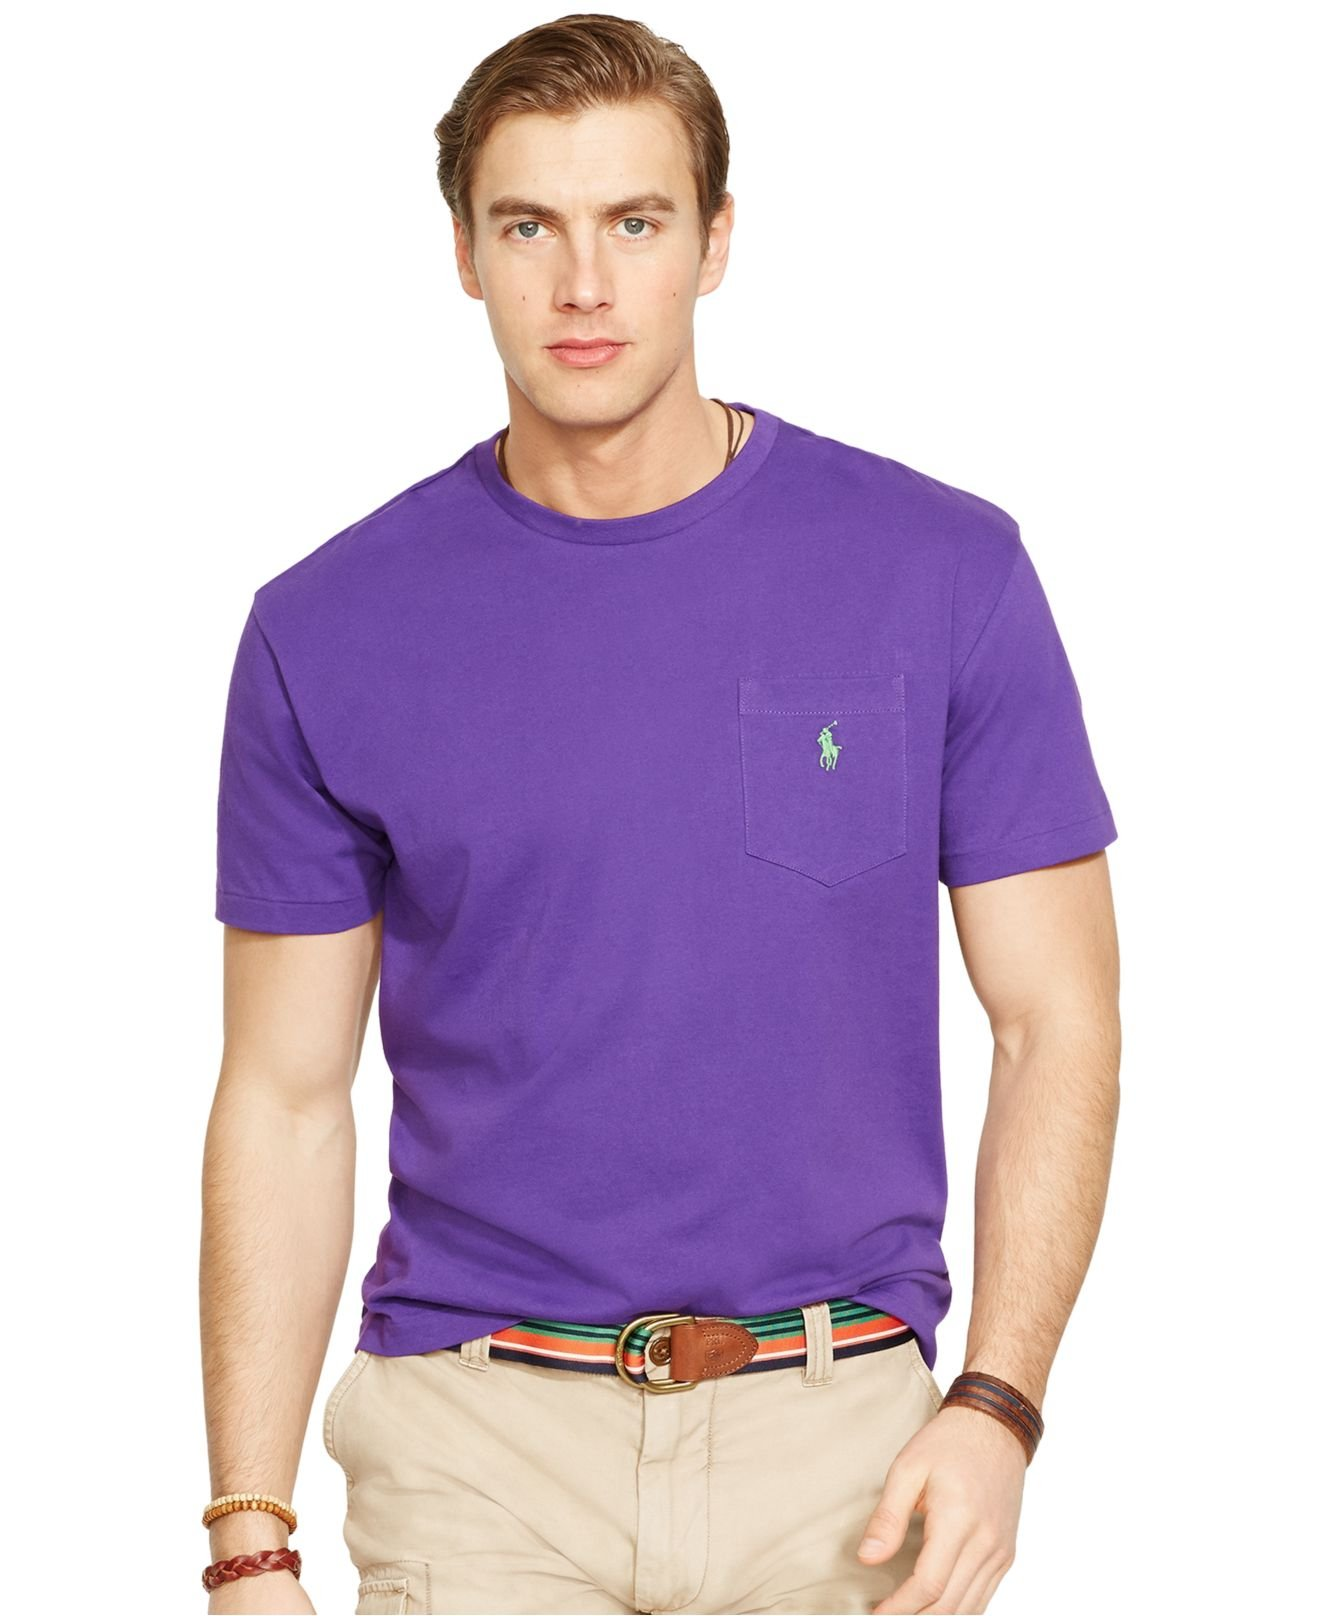 lyst polo ralph lauren crew neck pocket t shirt in purple for men. Black Bedroom Furniture Sets. Home Design Ideas